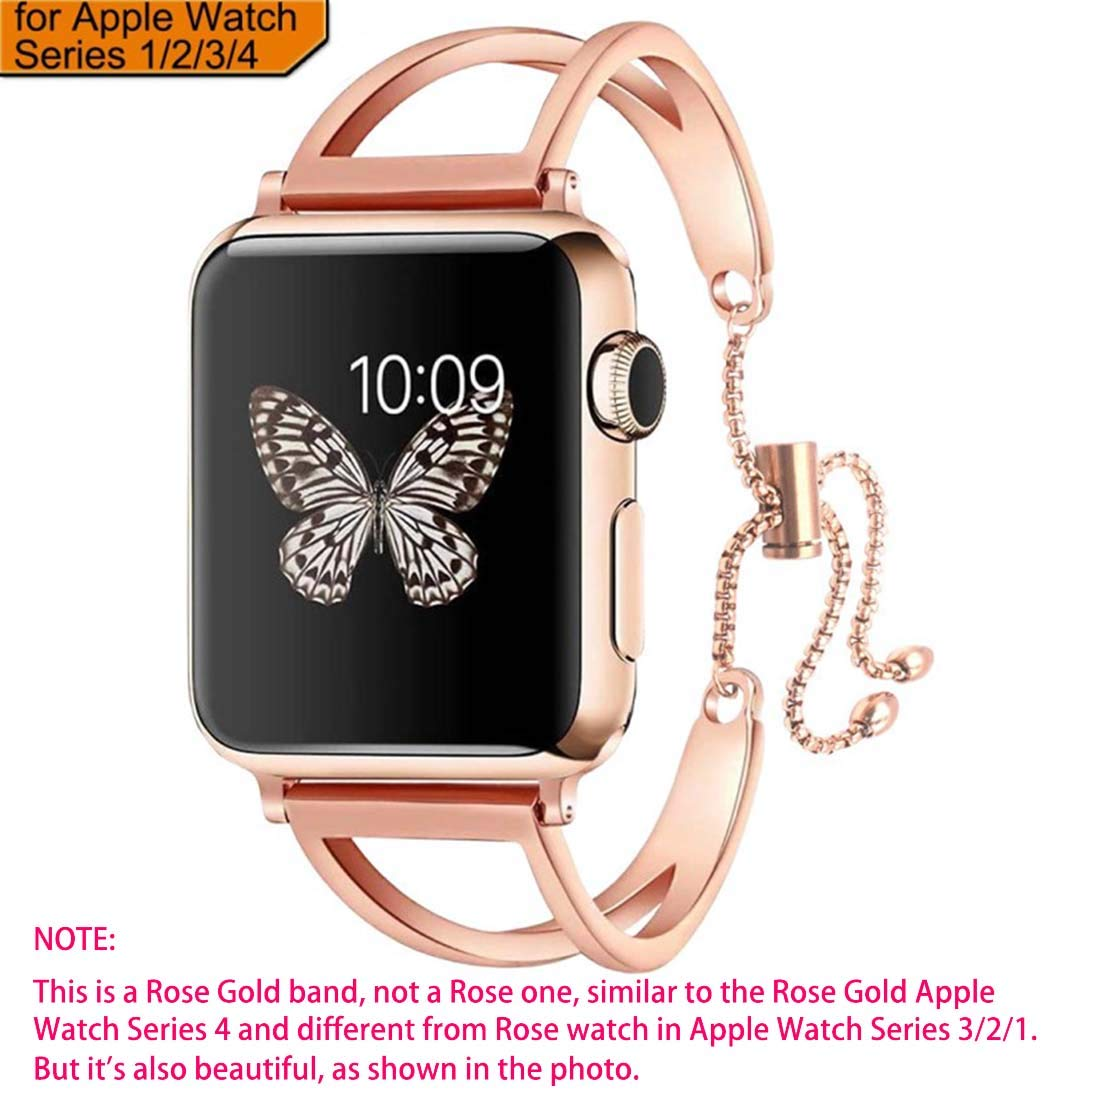 sunkeyou Compatible with IWatch Band 38mm 42mm, Newest Released Jewelry Bangle Cuff Replacement Bracelet Straps for Iwatch Series 4 3 2 1 All Models (Rose Gold, 38mm/40mm)